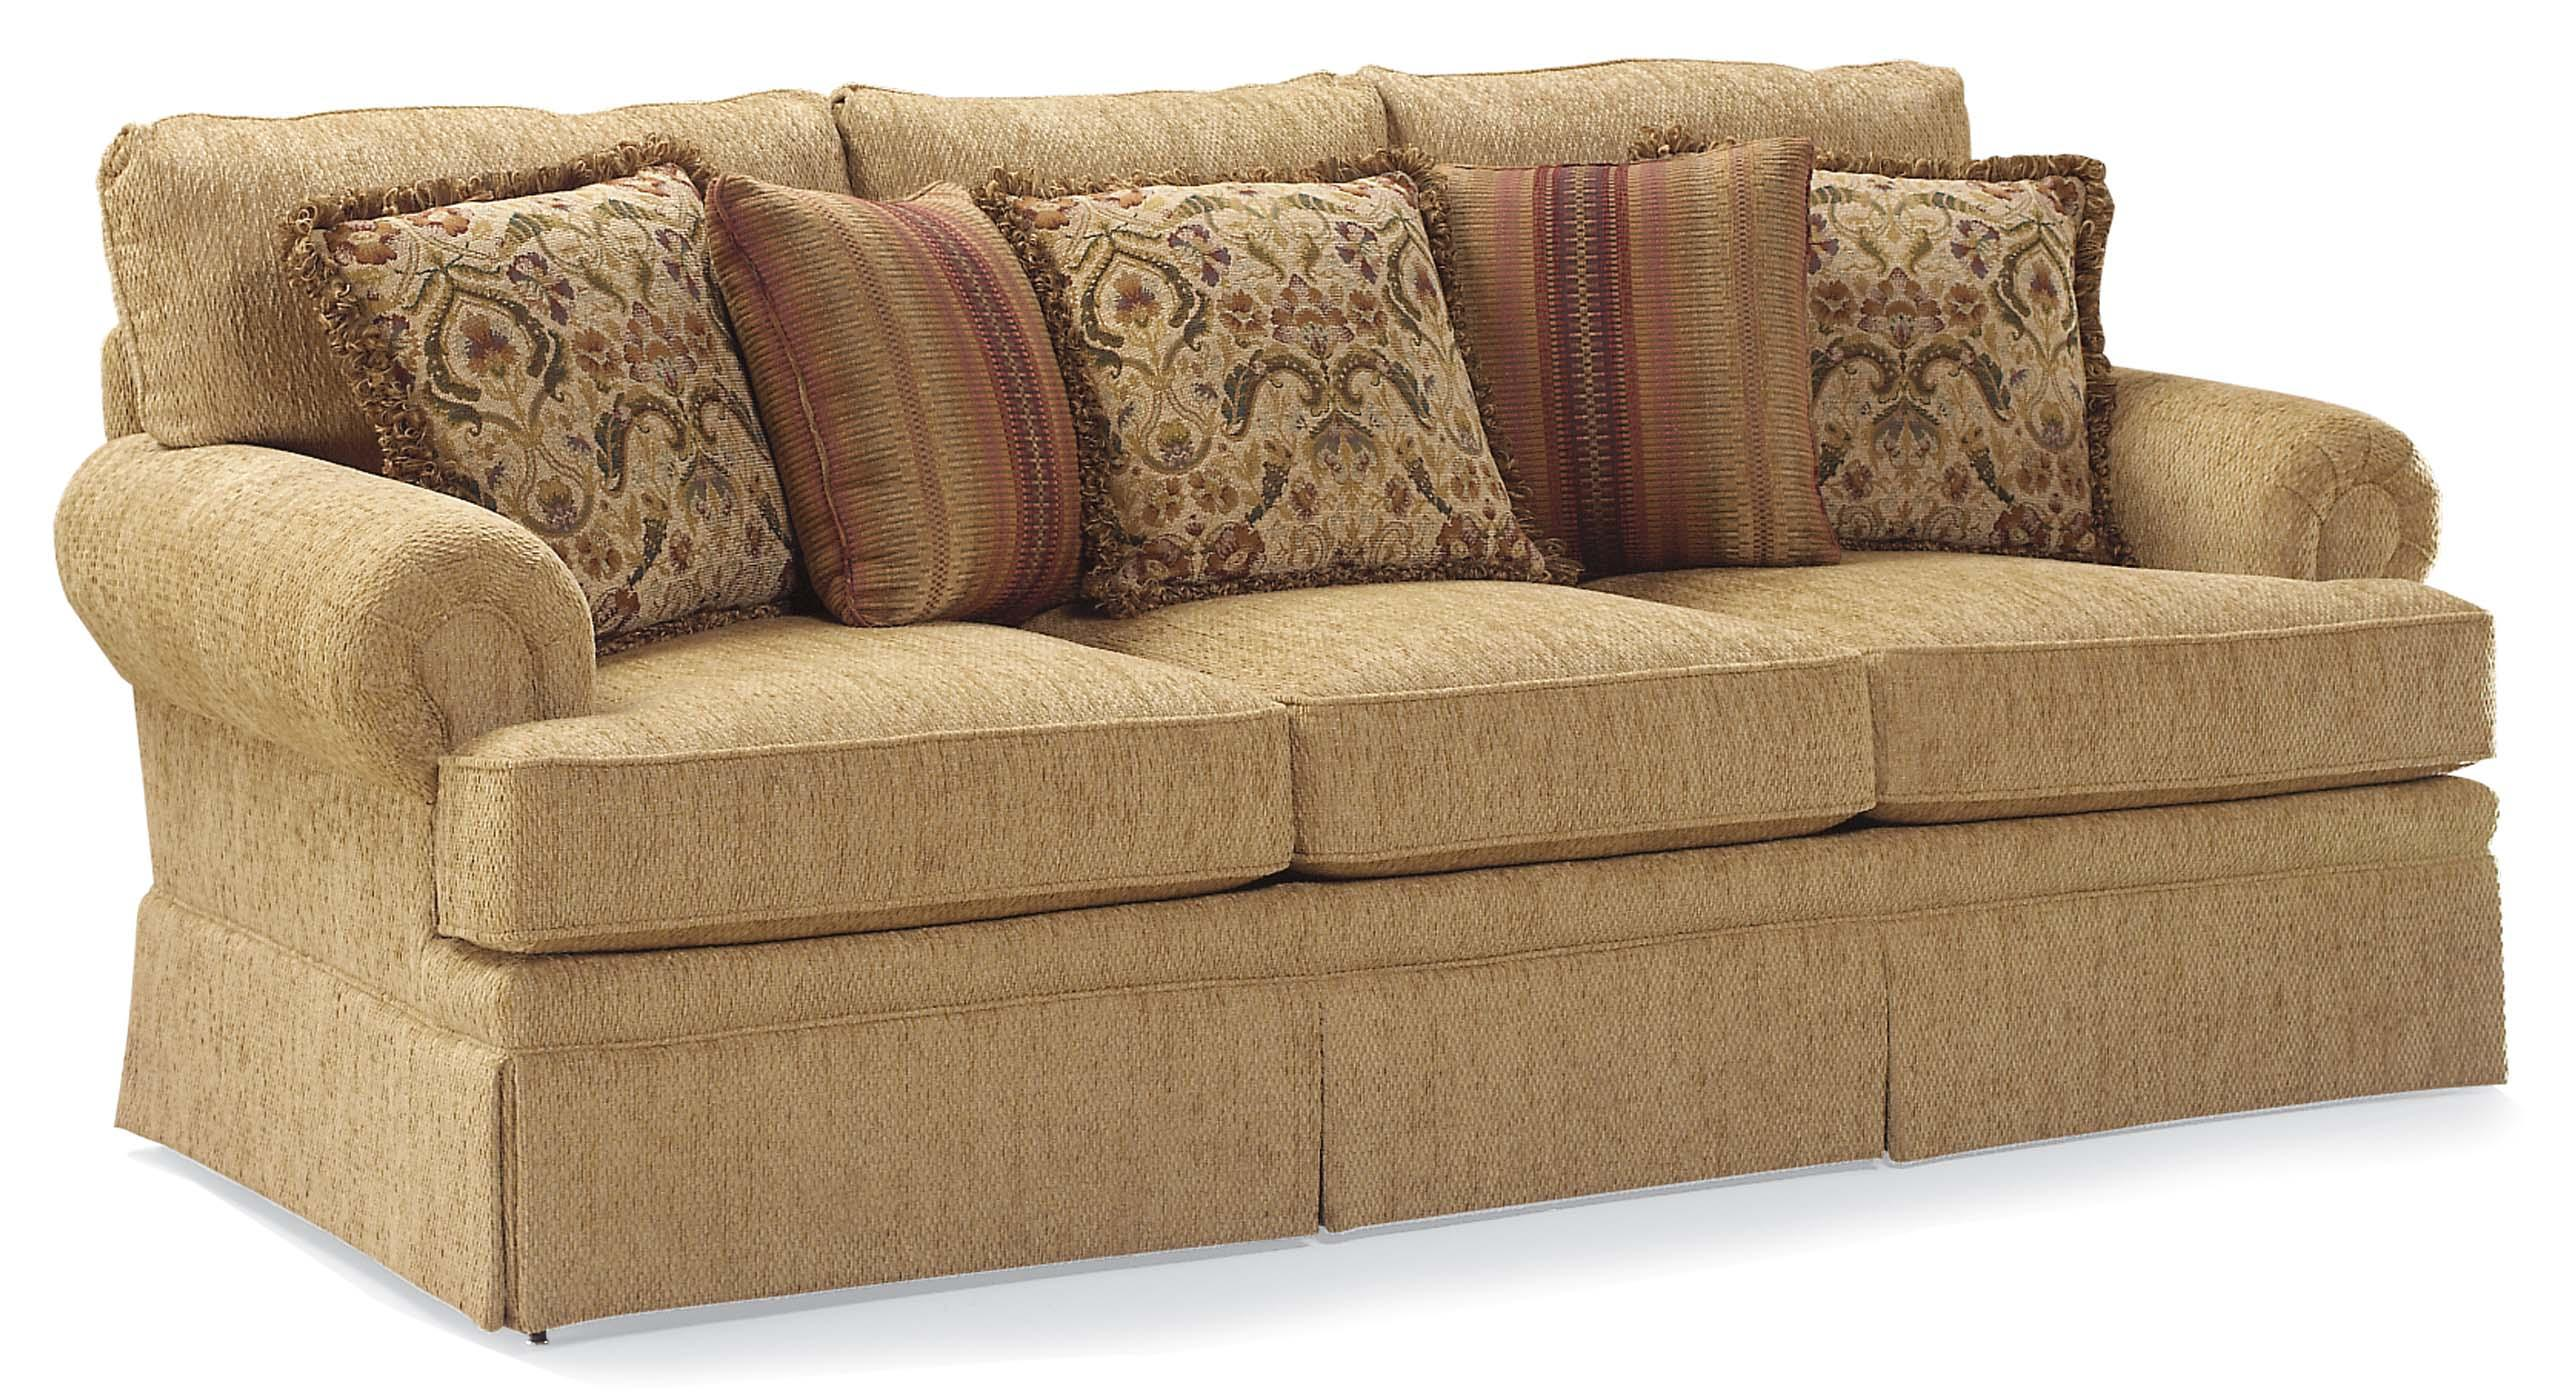 Fairfield Sofa Fairfield Sofa Accents Slighlty Arched Traditional Lindy S Thesofa